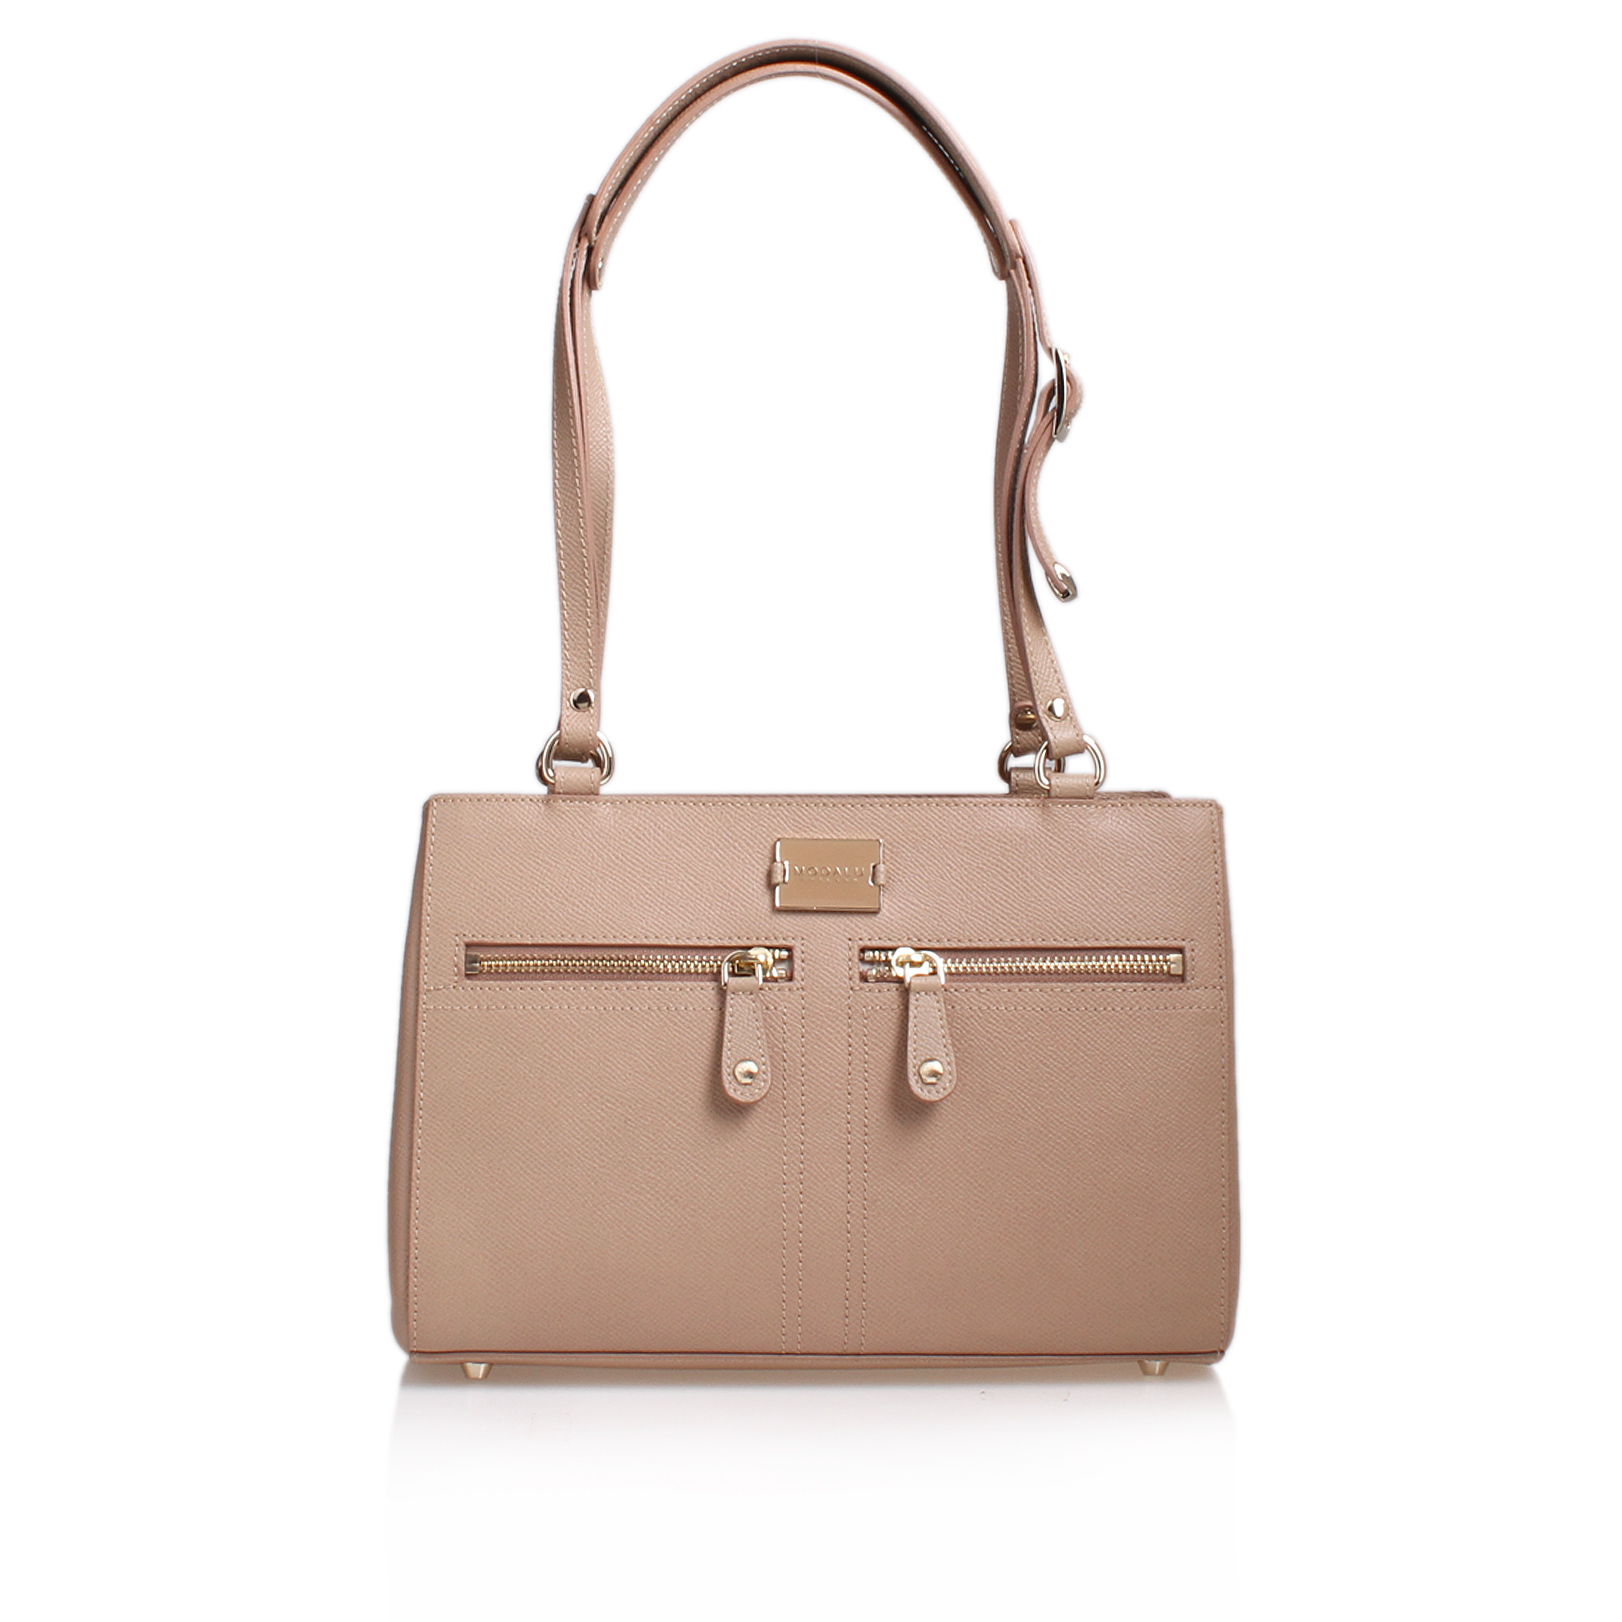 PIPPA LEATHER BAG